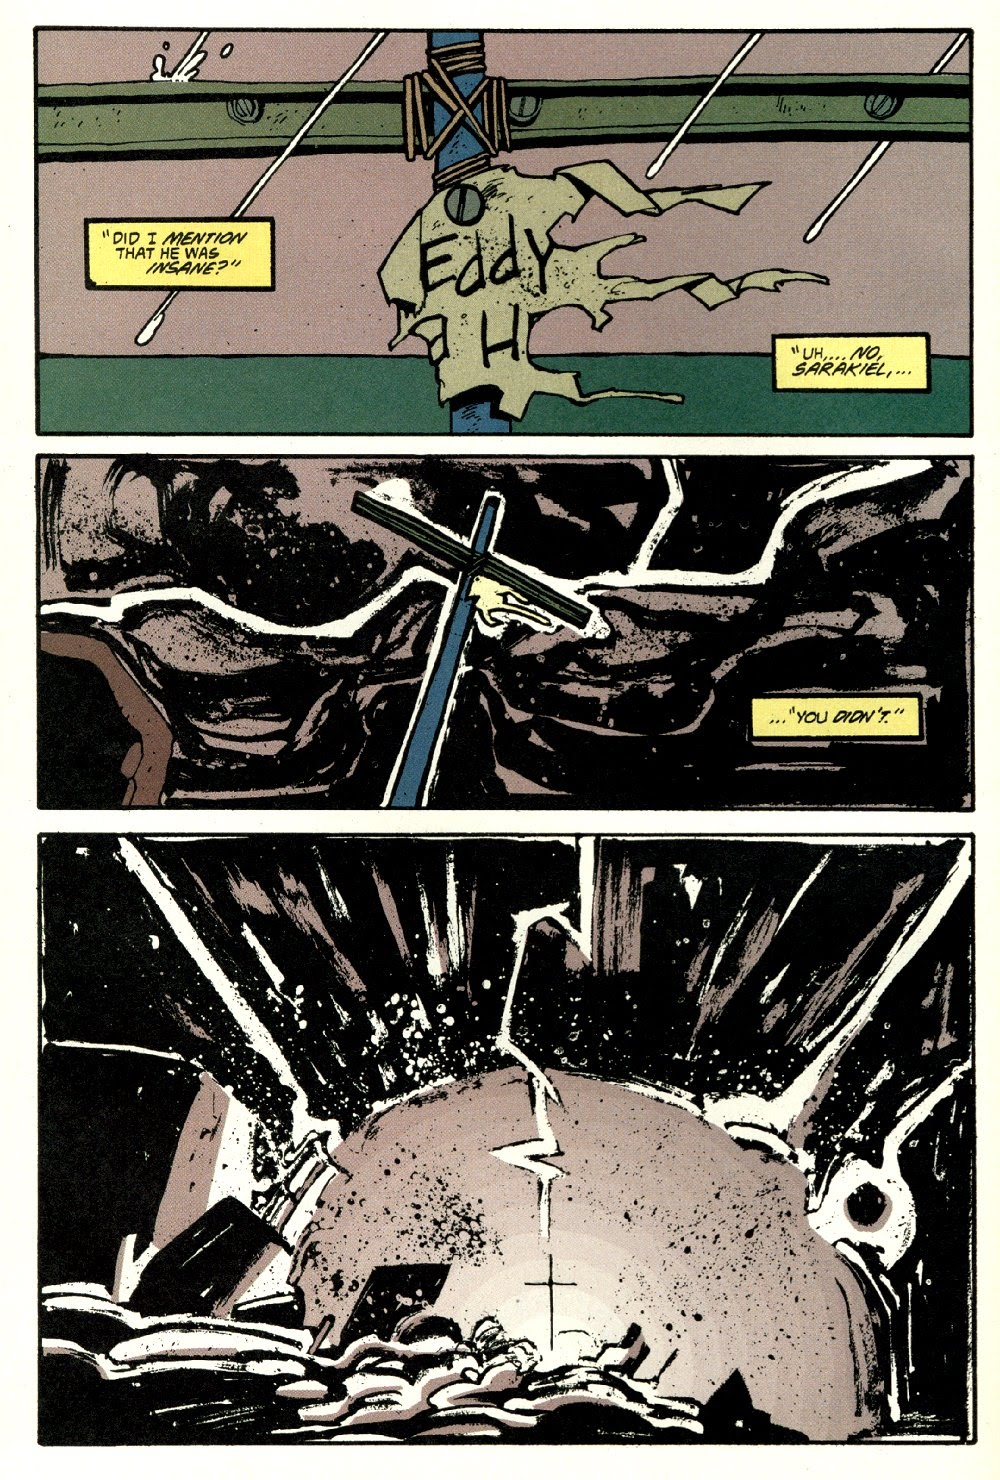 Read online Ted McKeever's Metropol comic -  Issue #8 - 28